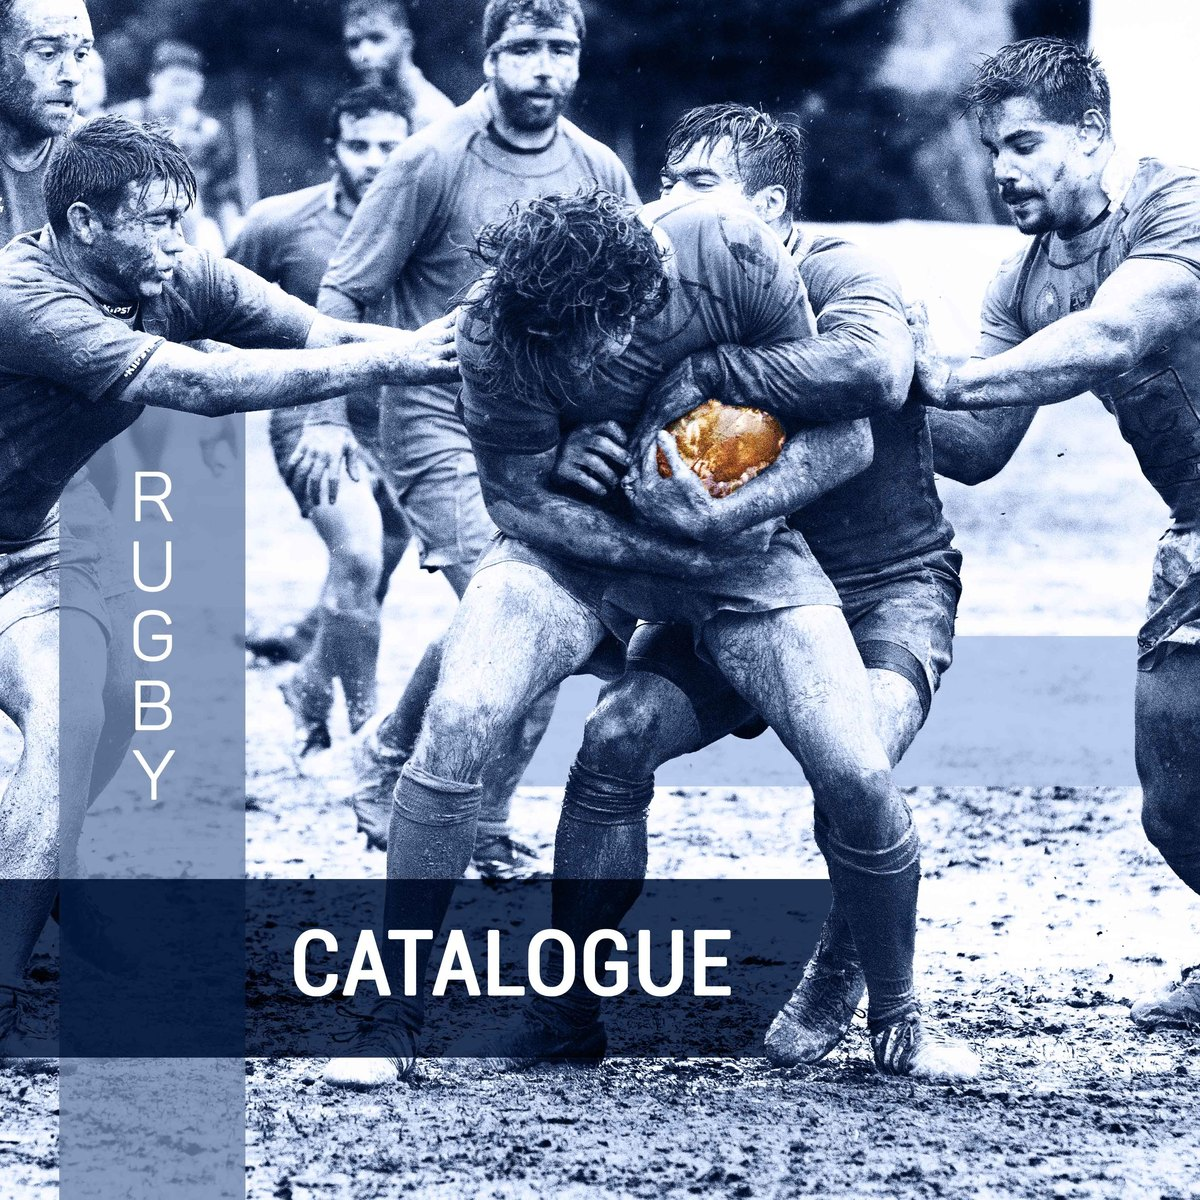 Image_catalogue-rugby-pre_sentation-3--0-0--45472bbb-64c7-4d86-b536-1fb36c6c6c16